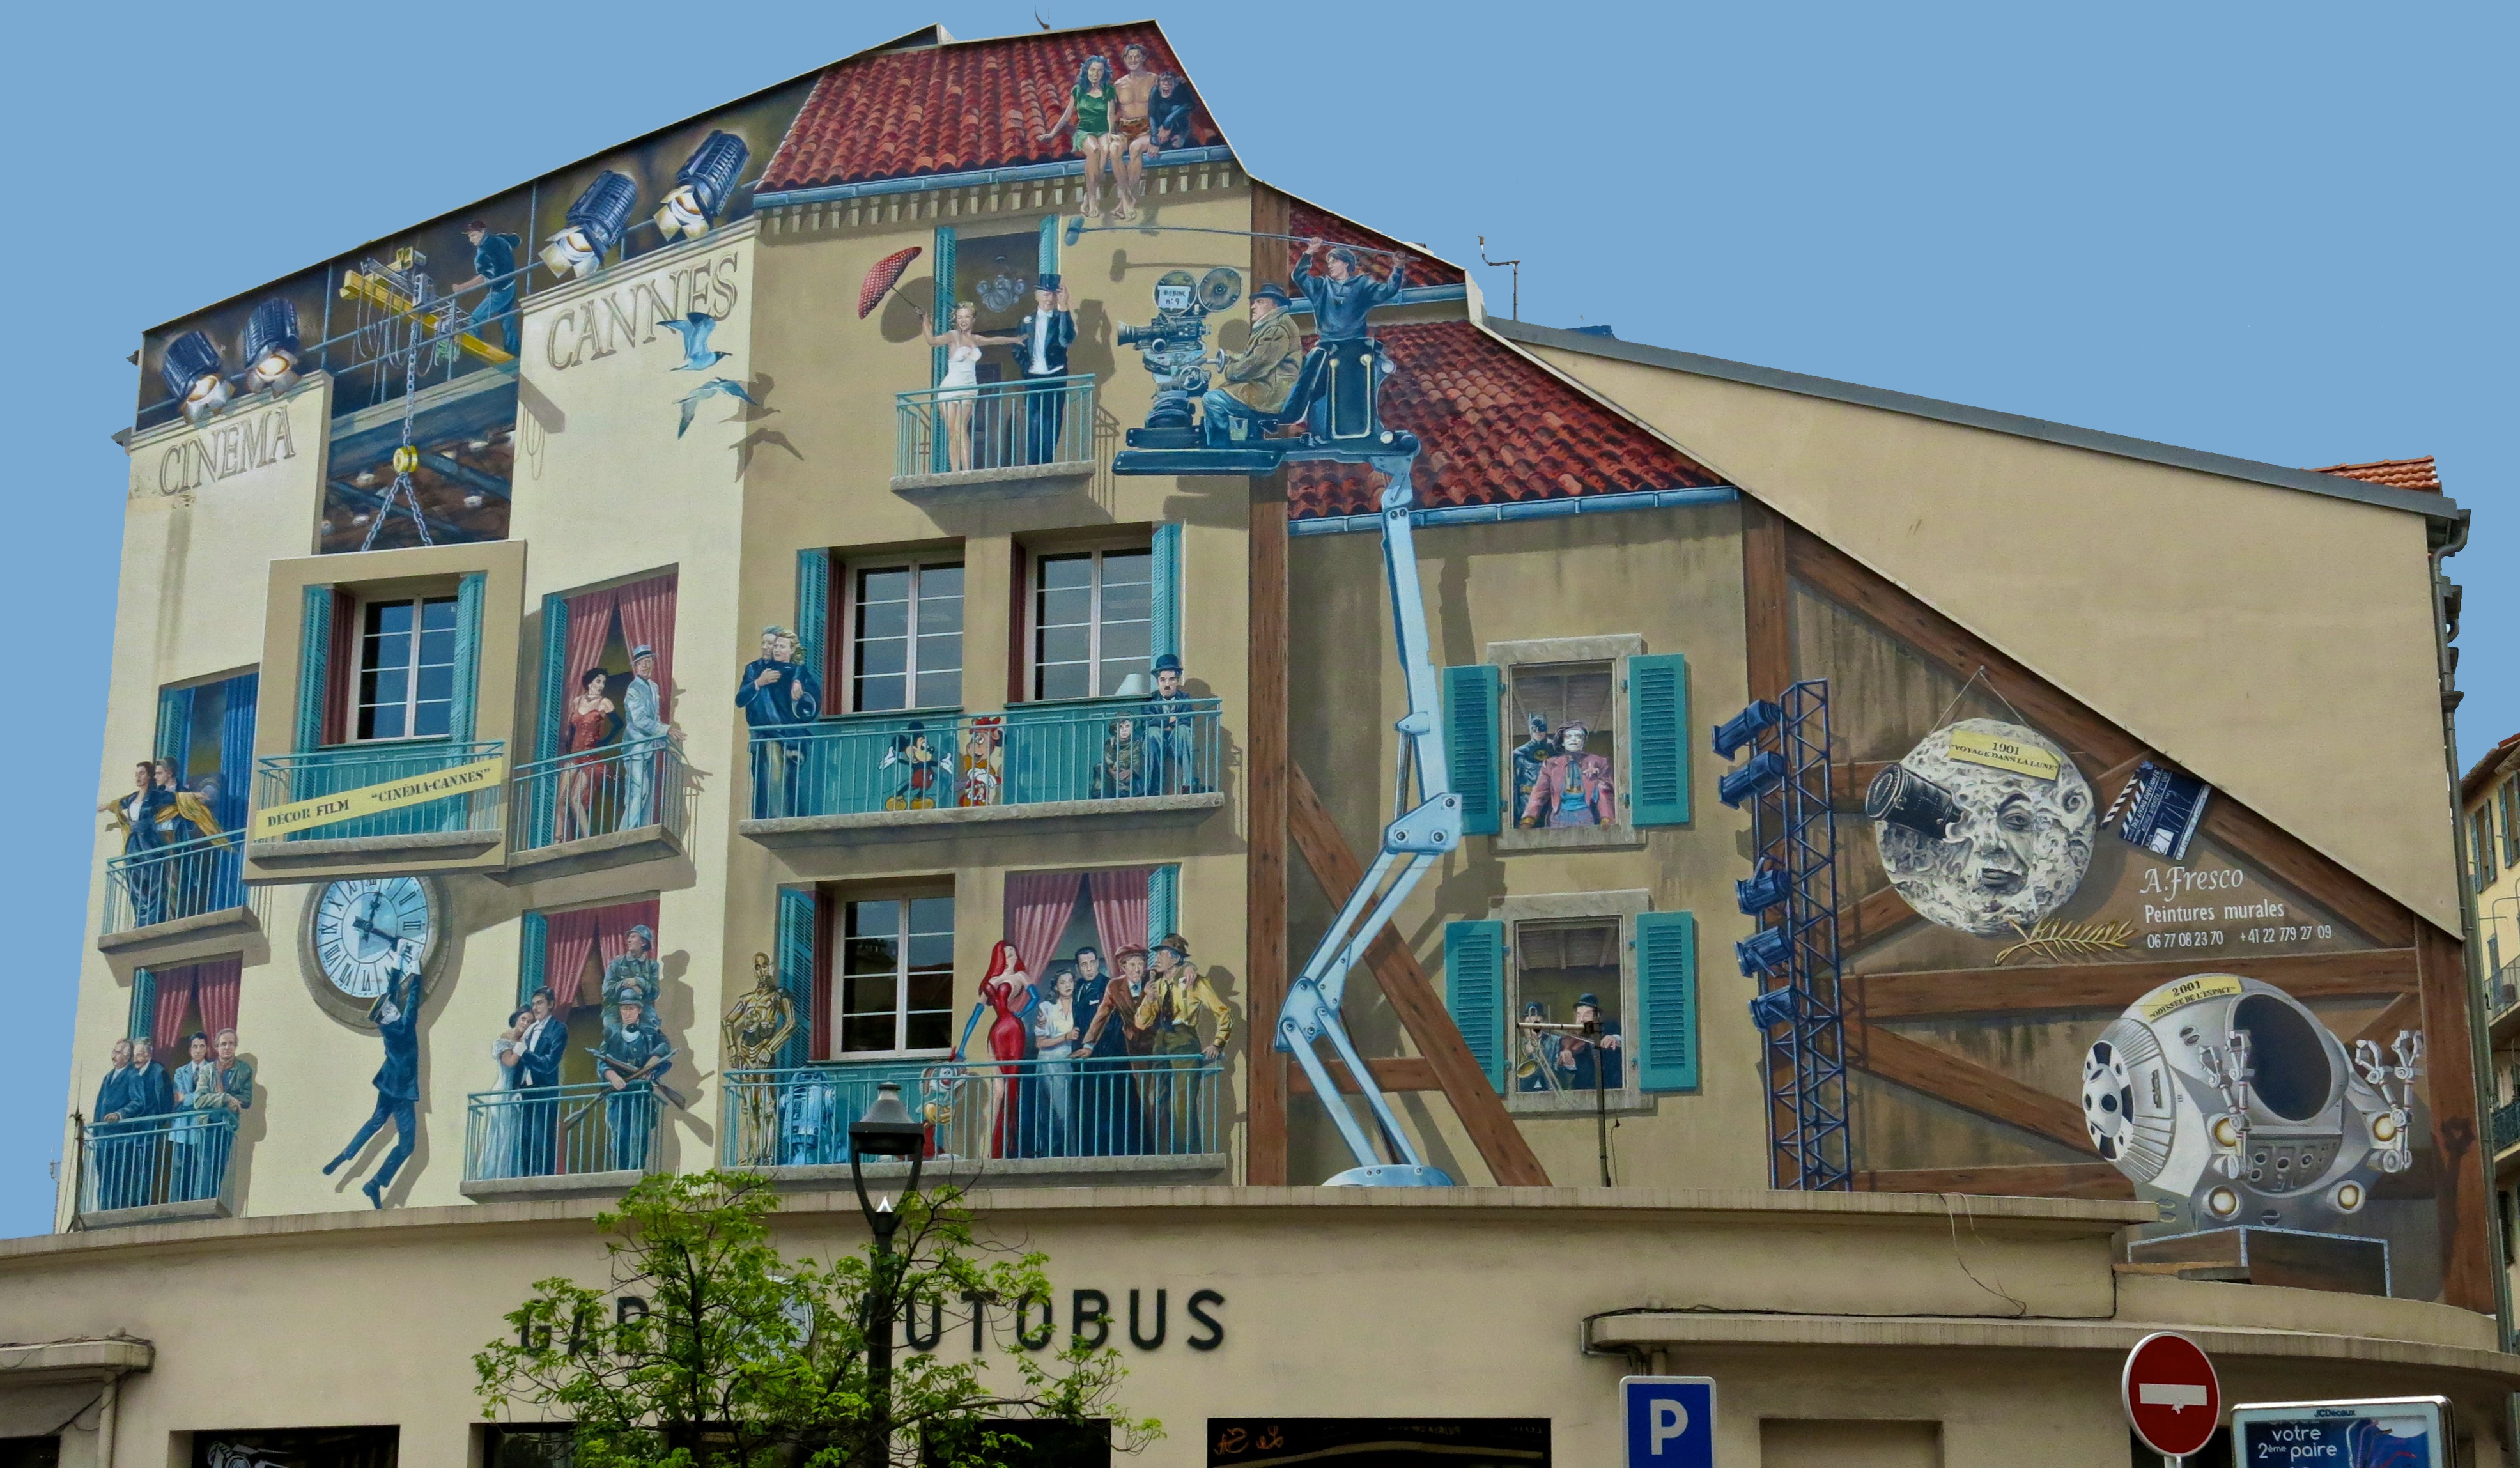 A film themed tour of france s cote d azur amy for Mural film